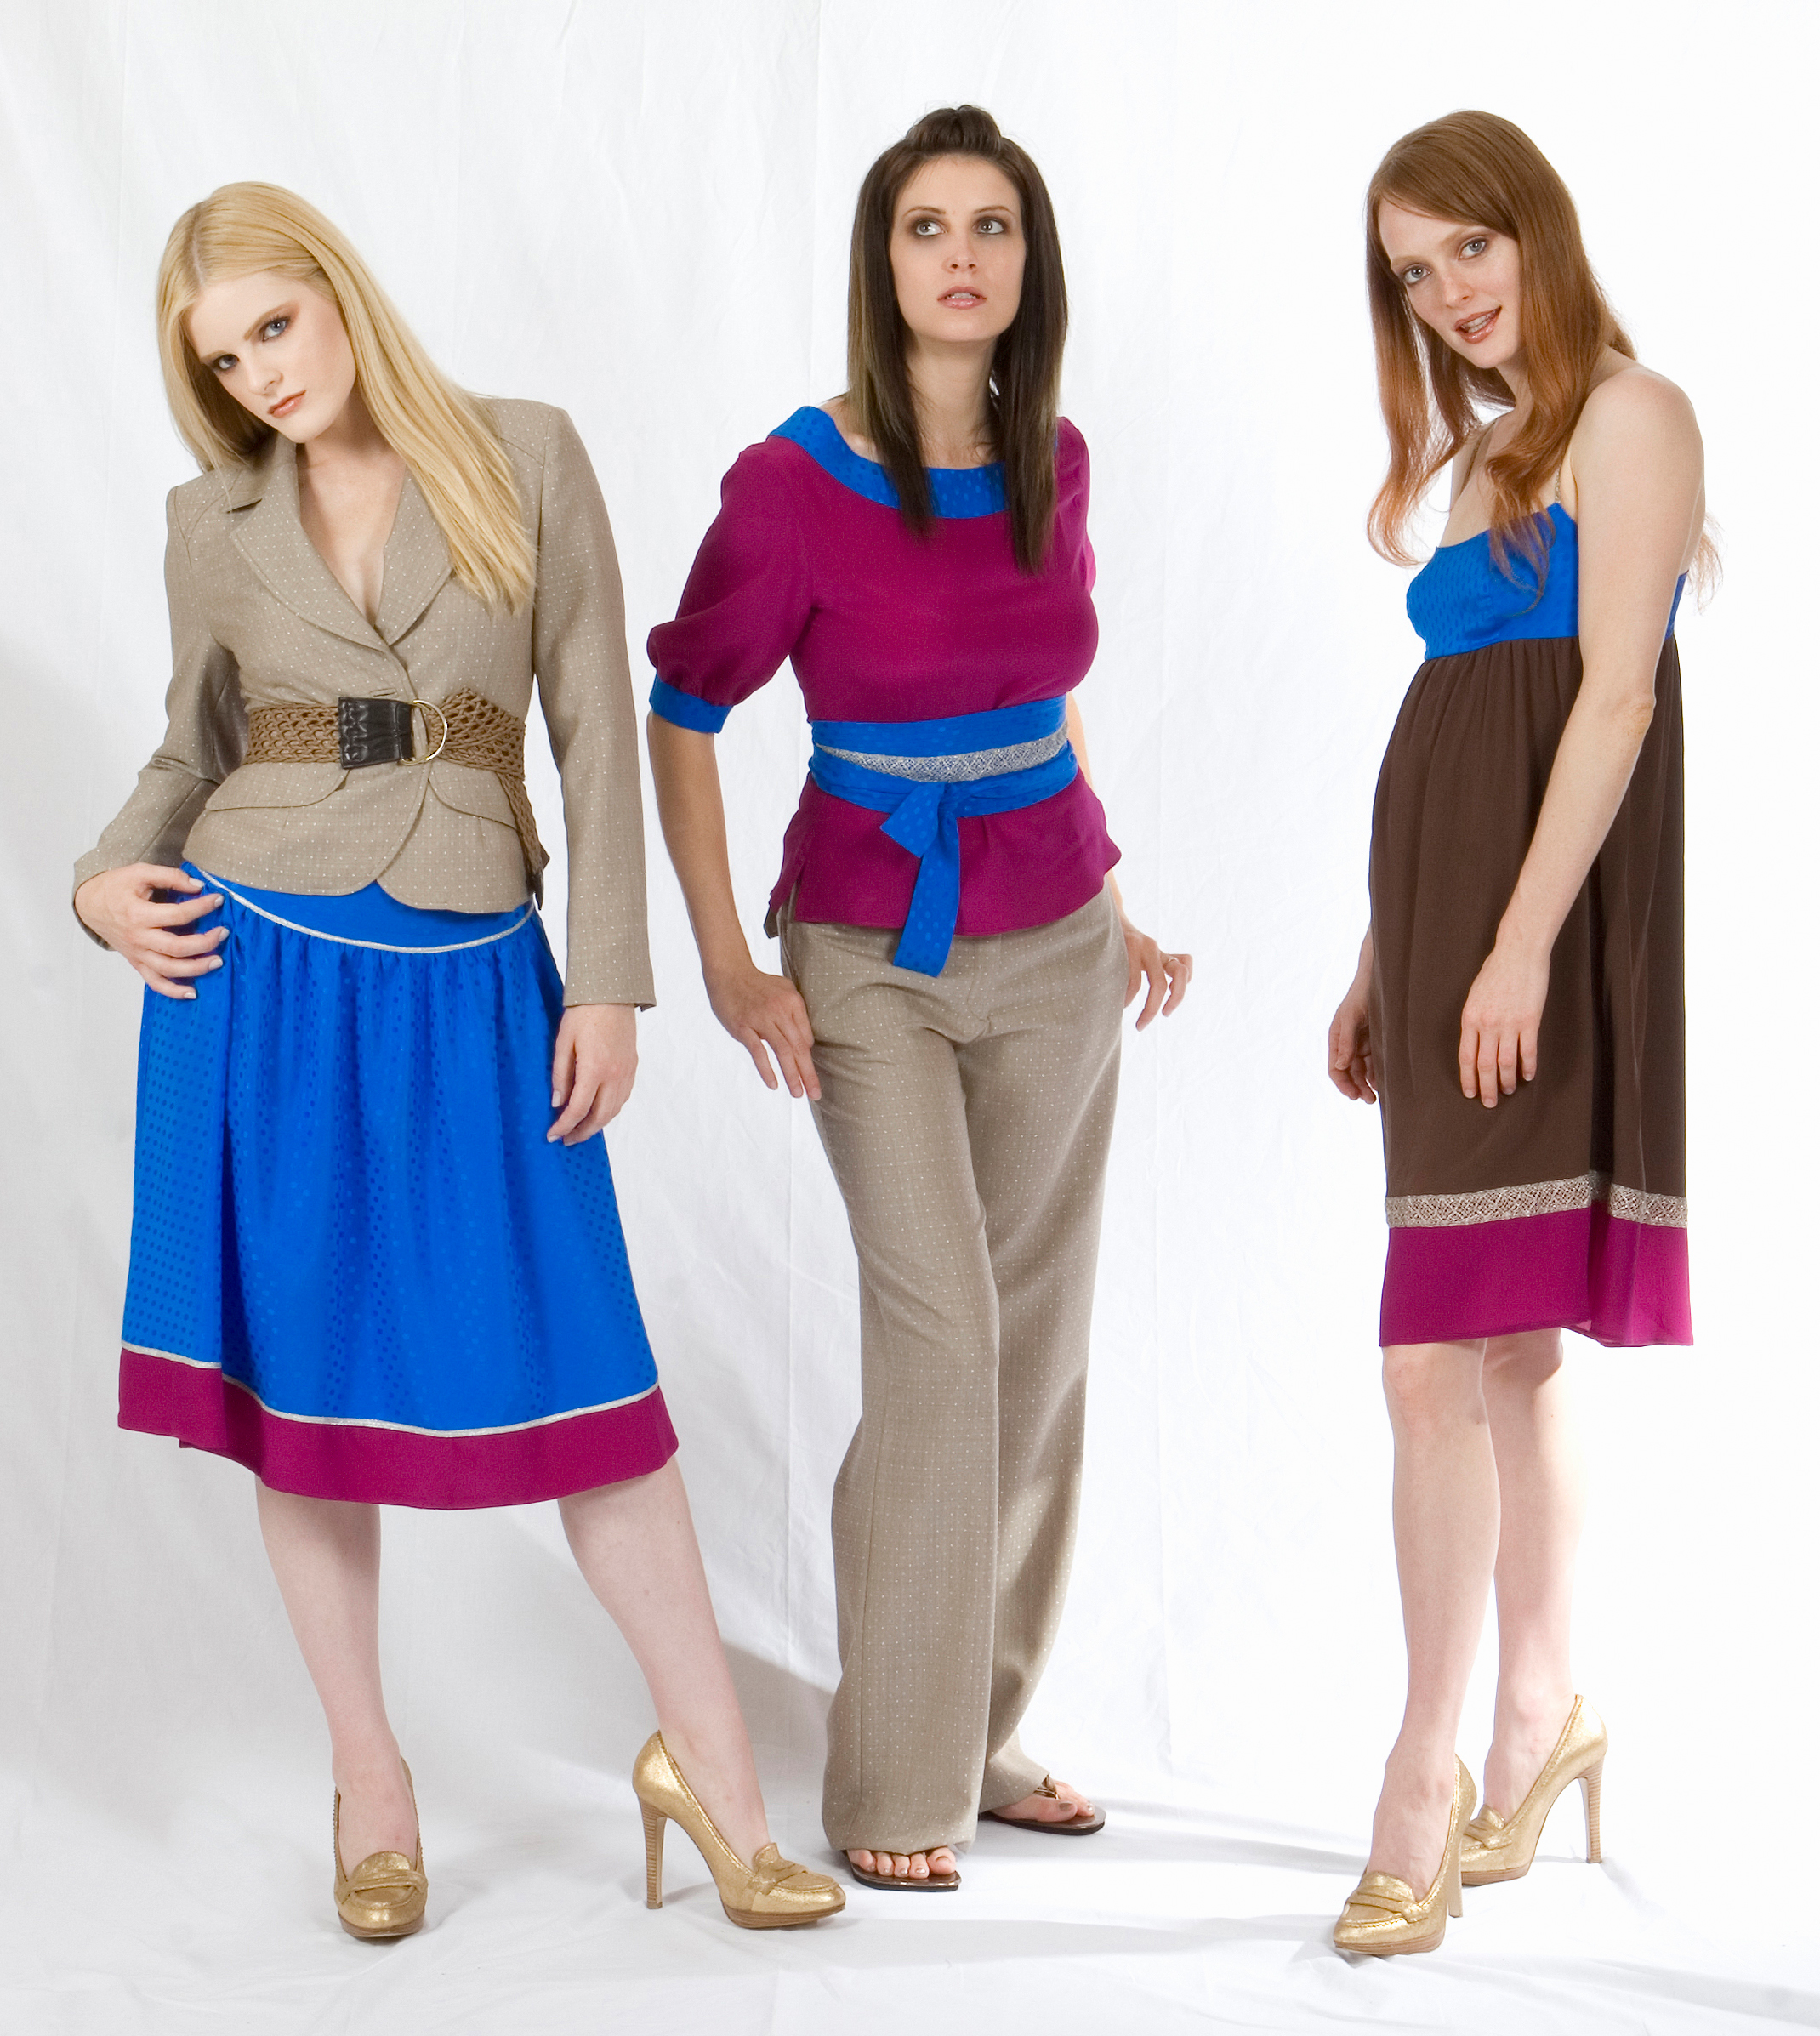 From left to right:   Silk Lined Shrunken Blazer Inotted Jaquard Suiting  High Yoke Full Skirt in Silk Dotted Jaquard & Crepe w/ Metallic Trim    Belted Scoop Blouse in Silk Crepe & Dotted Jaquard w/ Metallic Lace Trim  Boy Trouser in Dotted Jaquard Suiting    Color Blocked Cami Dress in Silk Dotted Jaquard & Crepe.